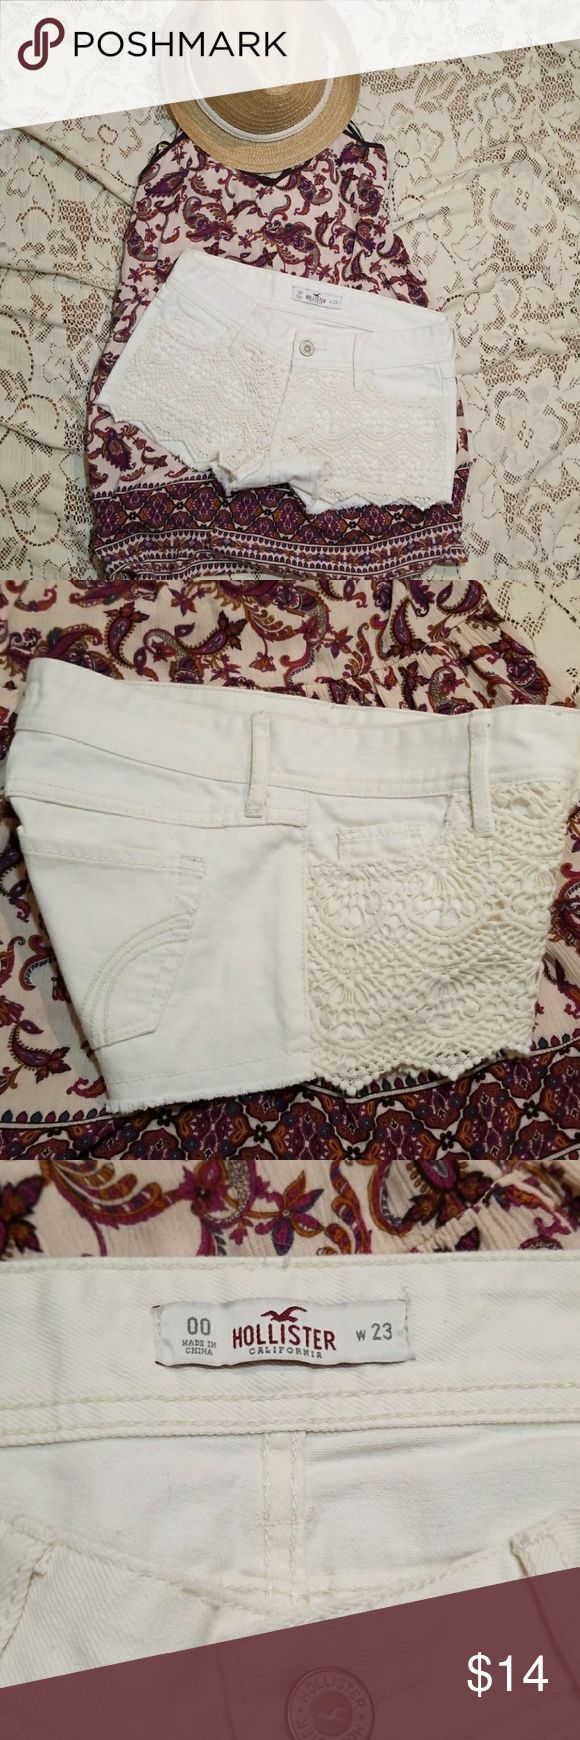 """Hollister 23 00 cream lace shorts denim crocheted Hollister brand  Size 23 00 Pretty cream color Lace embroidered crocheted front Demin like material Excellent preowned condition, nearly new Material tag removed, i believe these are 100% cotton  Smoke free home with pets  6"""" rise, 1.5"""" inseam Hollister Shorts Jean Shorts"""